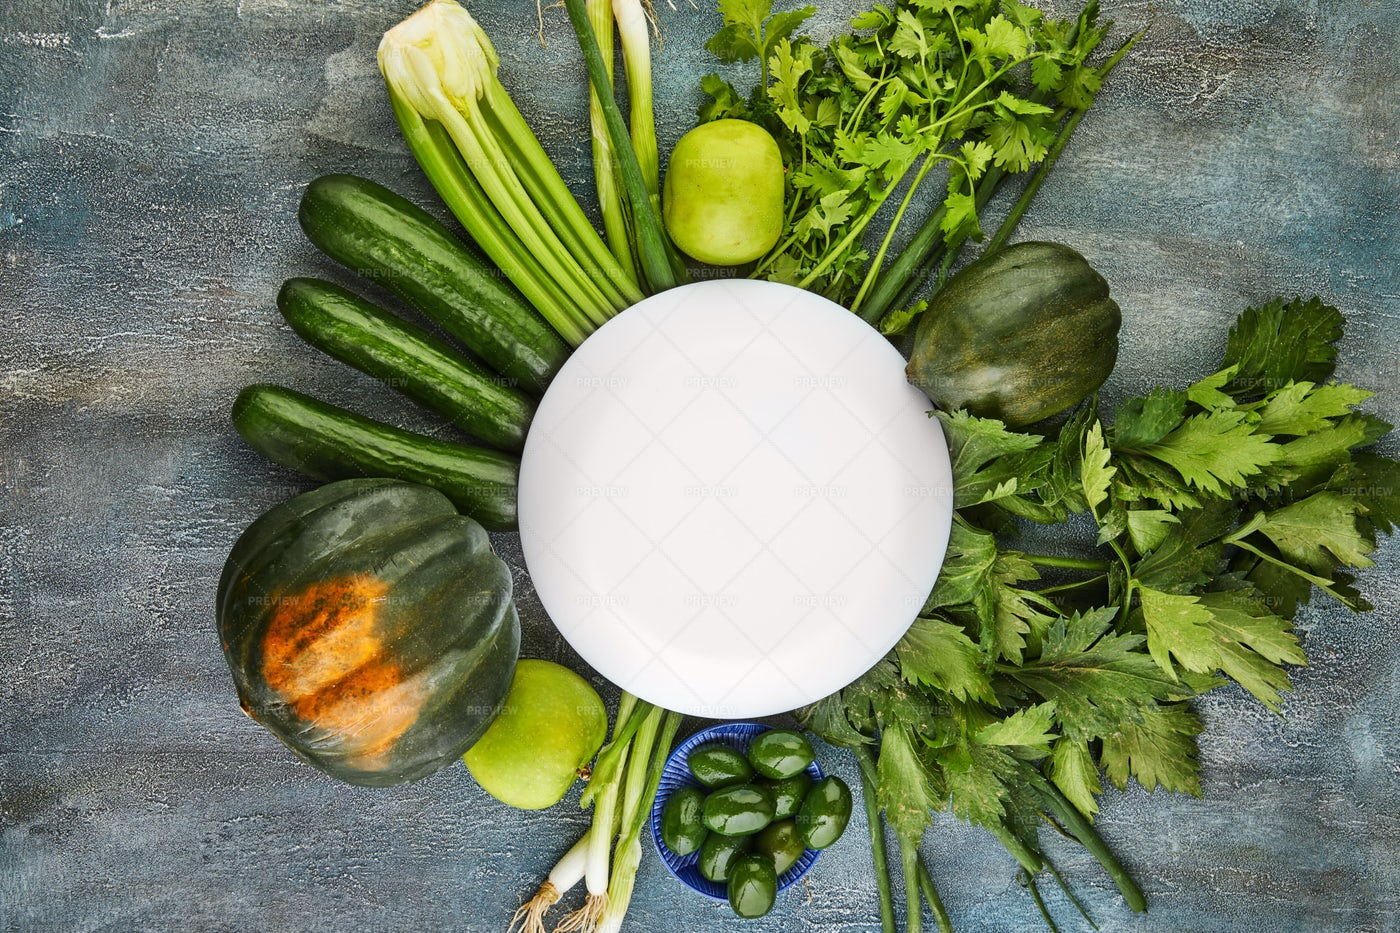 Vegetables Of Green Color: Stock Photos